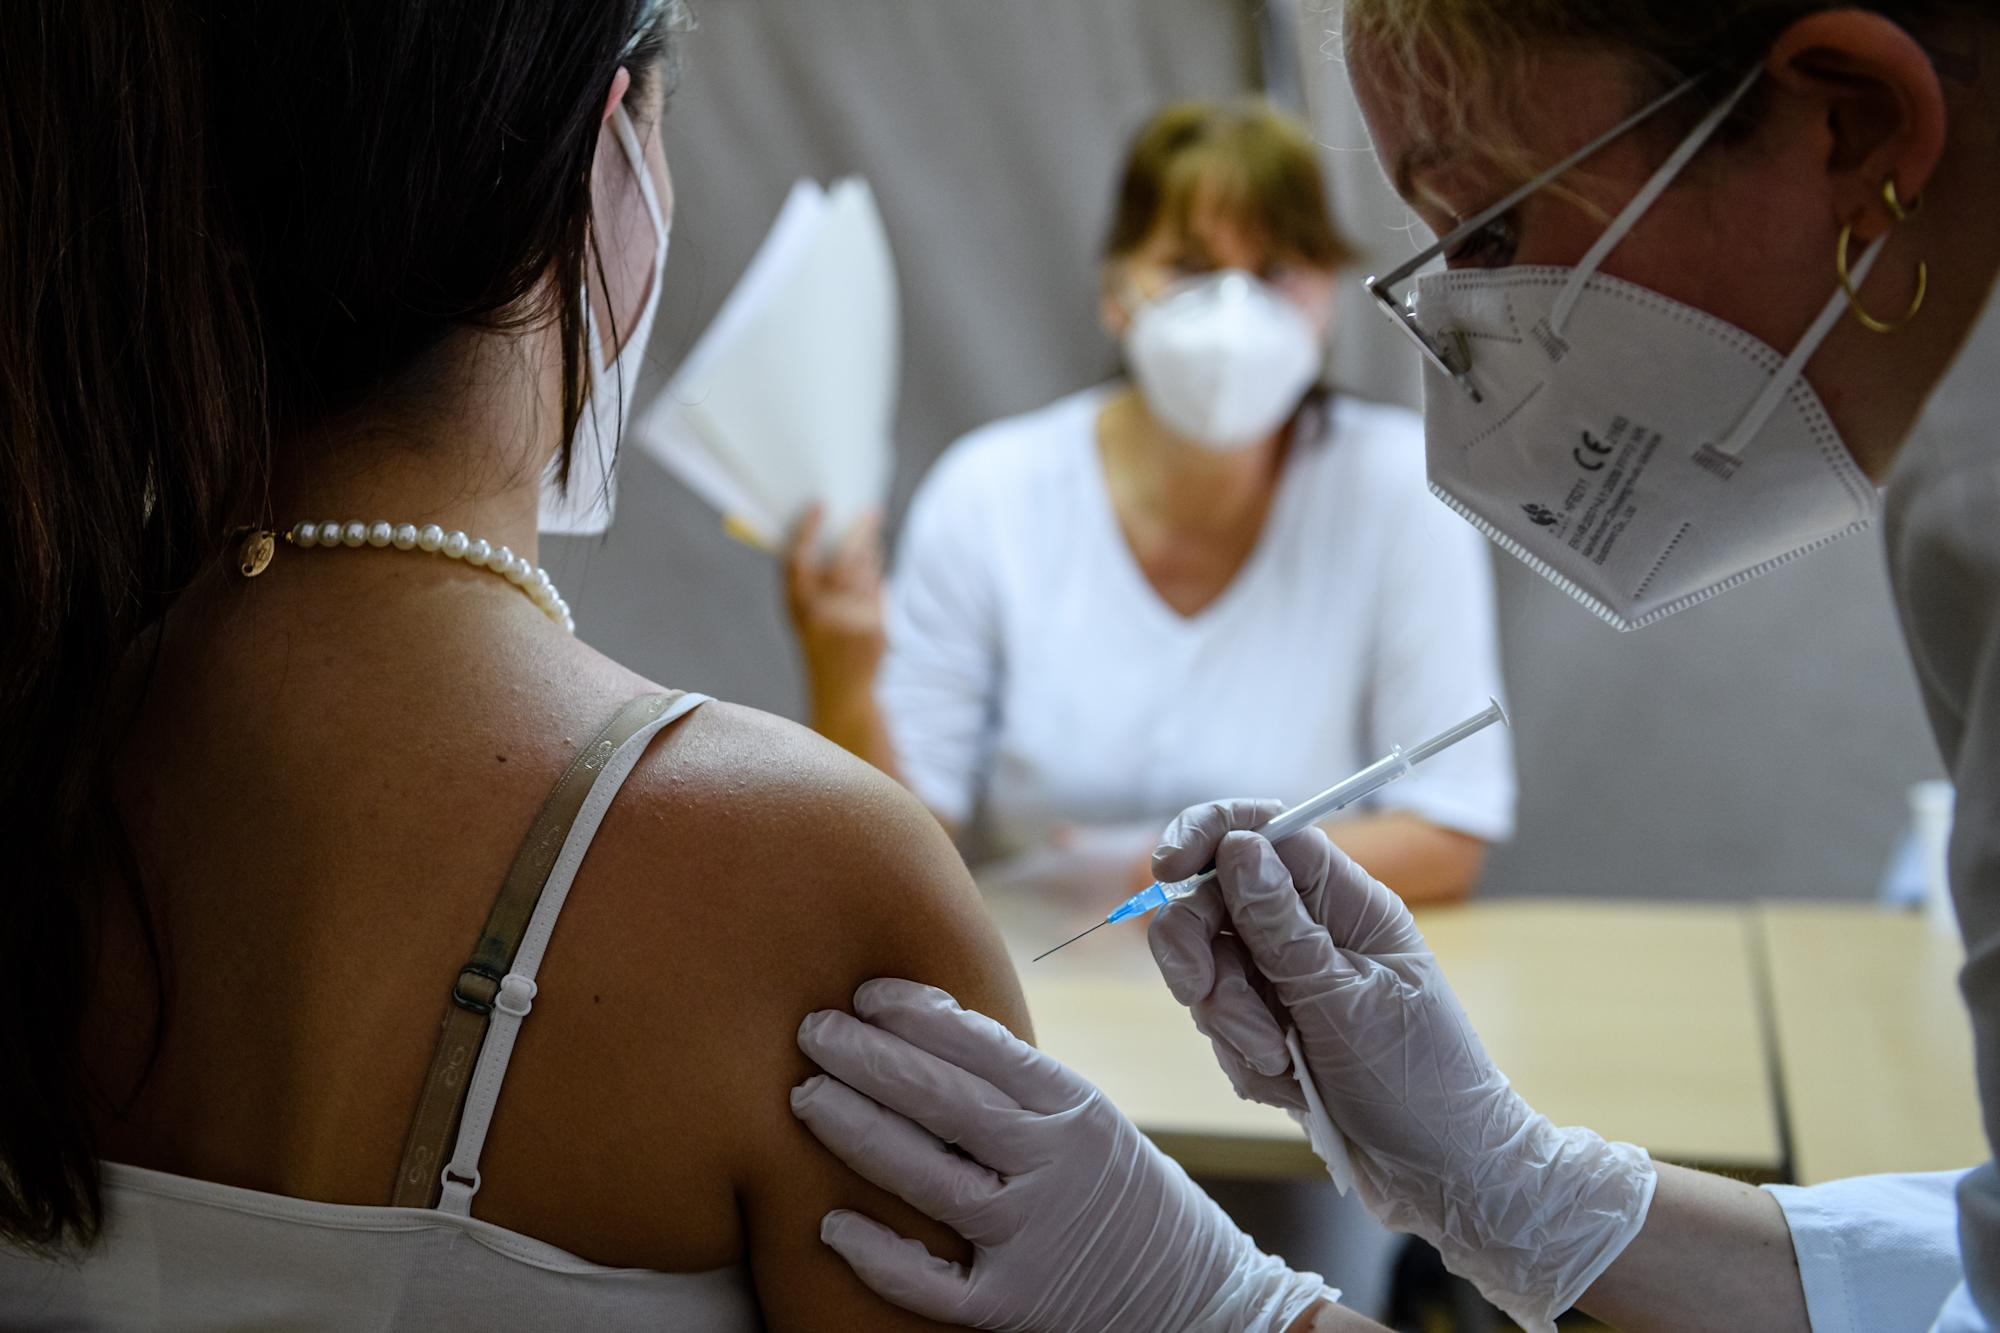 Several EU countries are now vaccinating faster than the UK